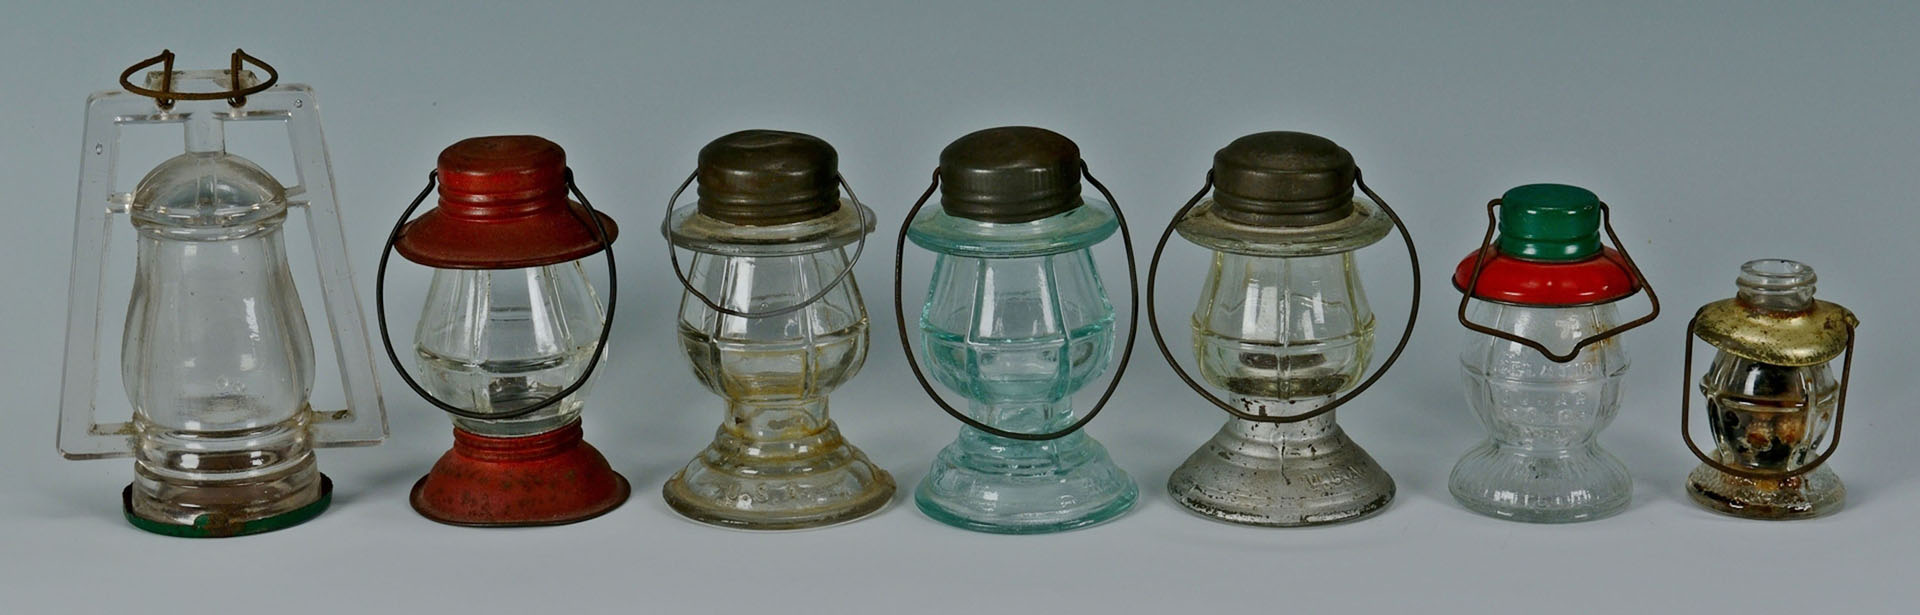 12 American Glass Candy Containers